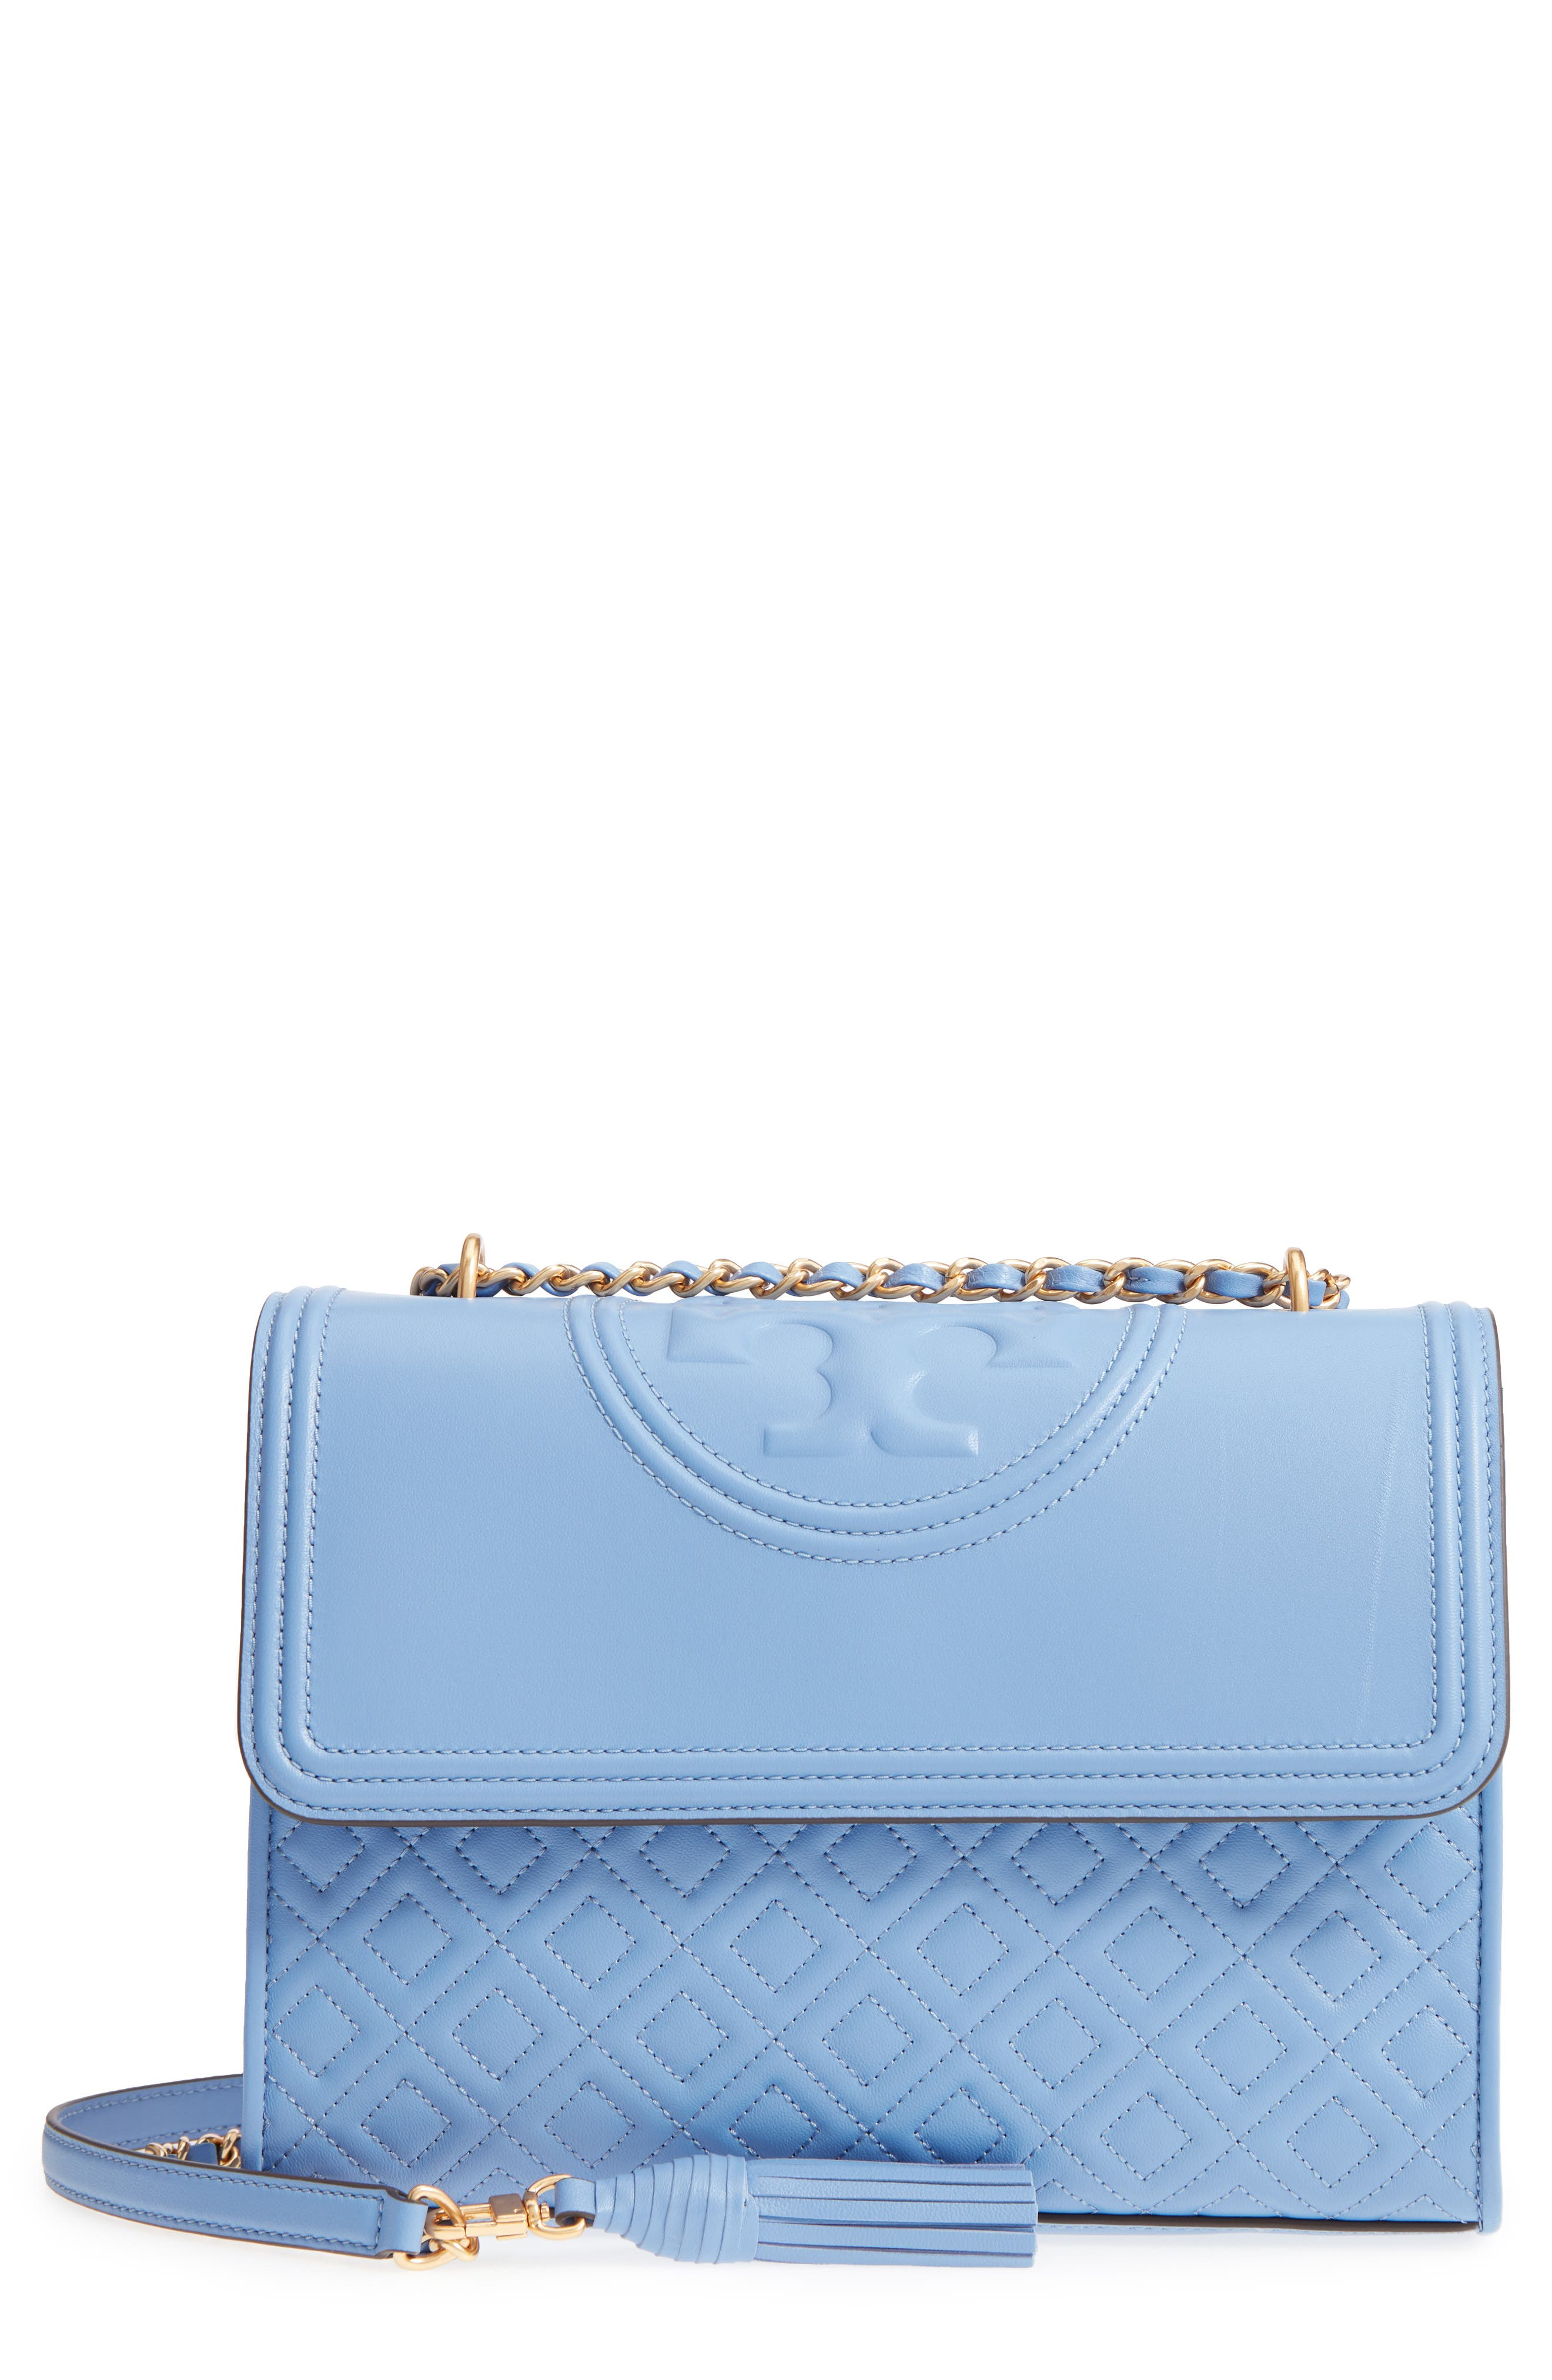 Main Image - Tory Burch Fleming Leather Convertible Shoulder Bag